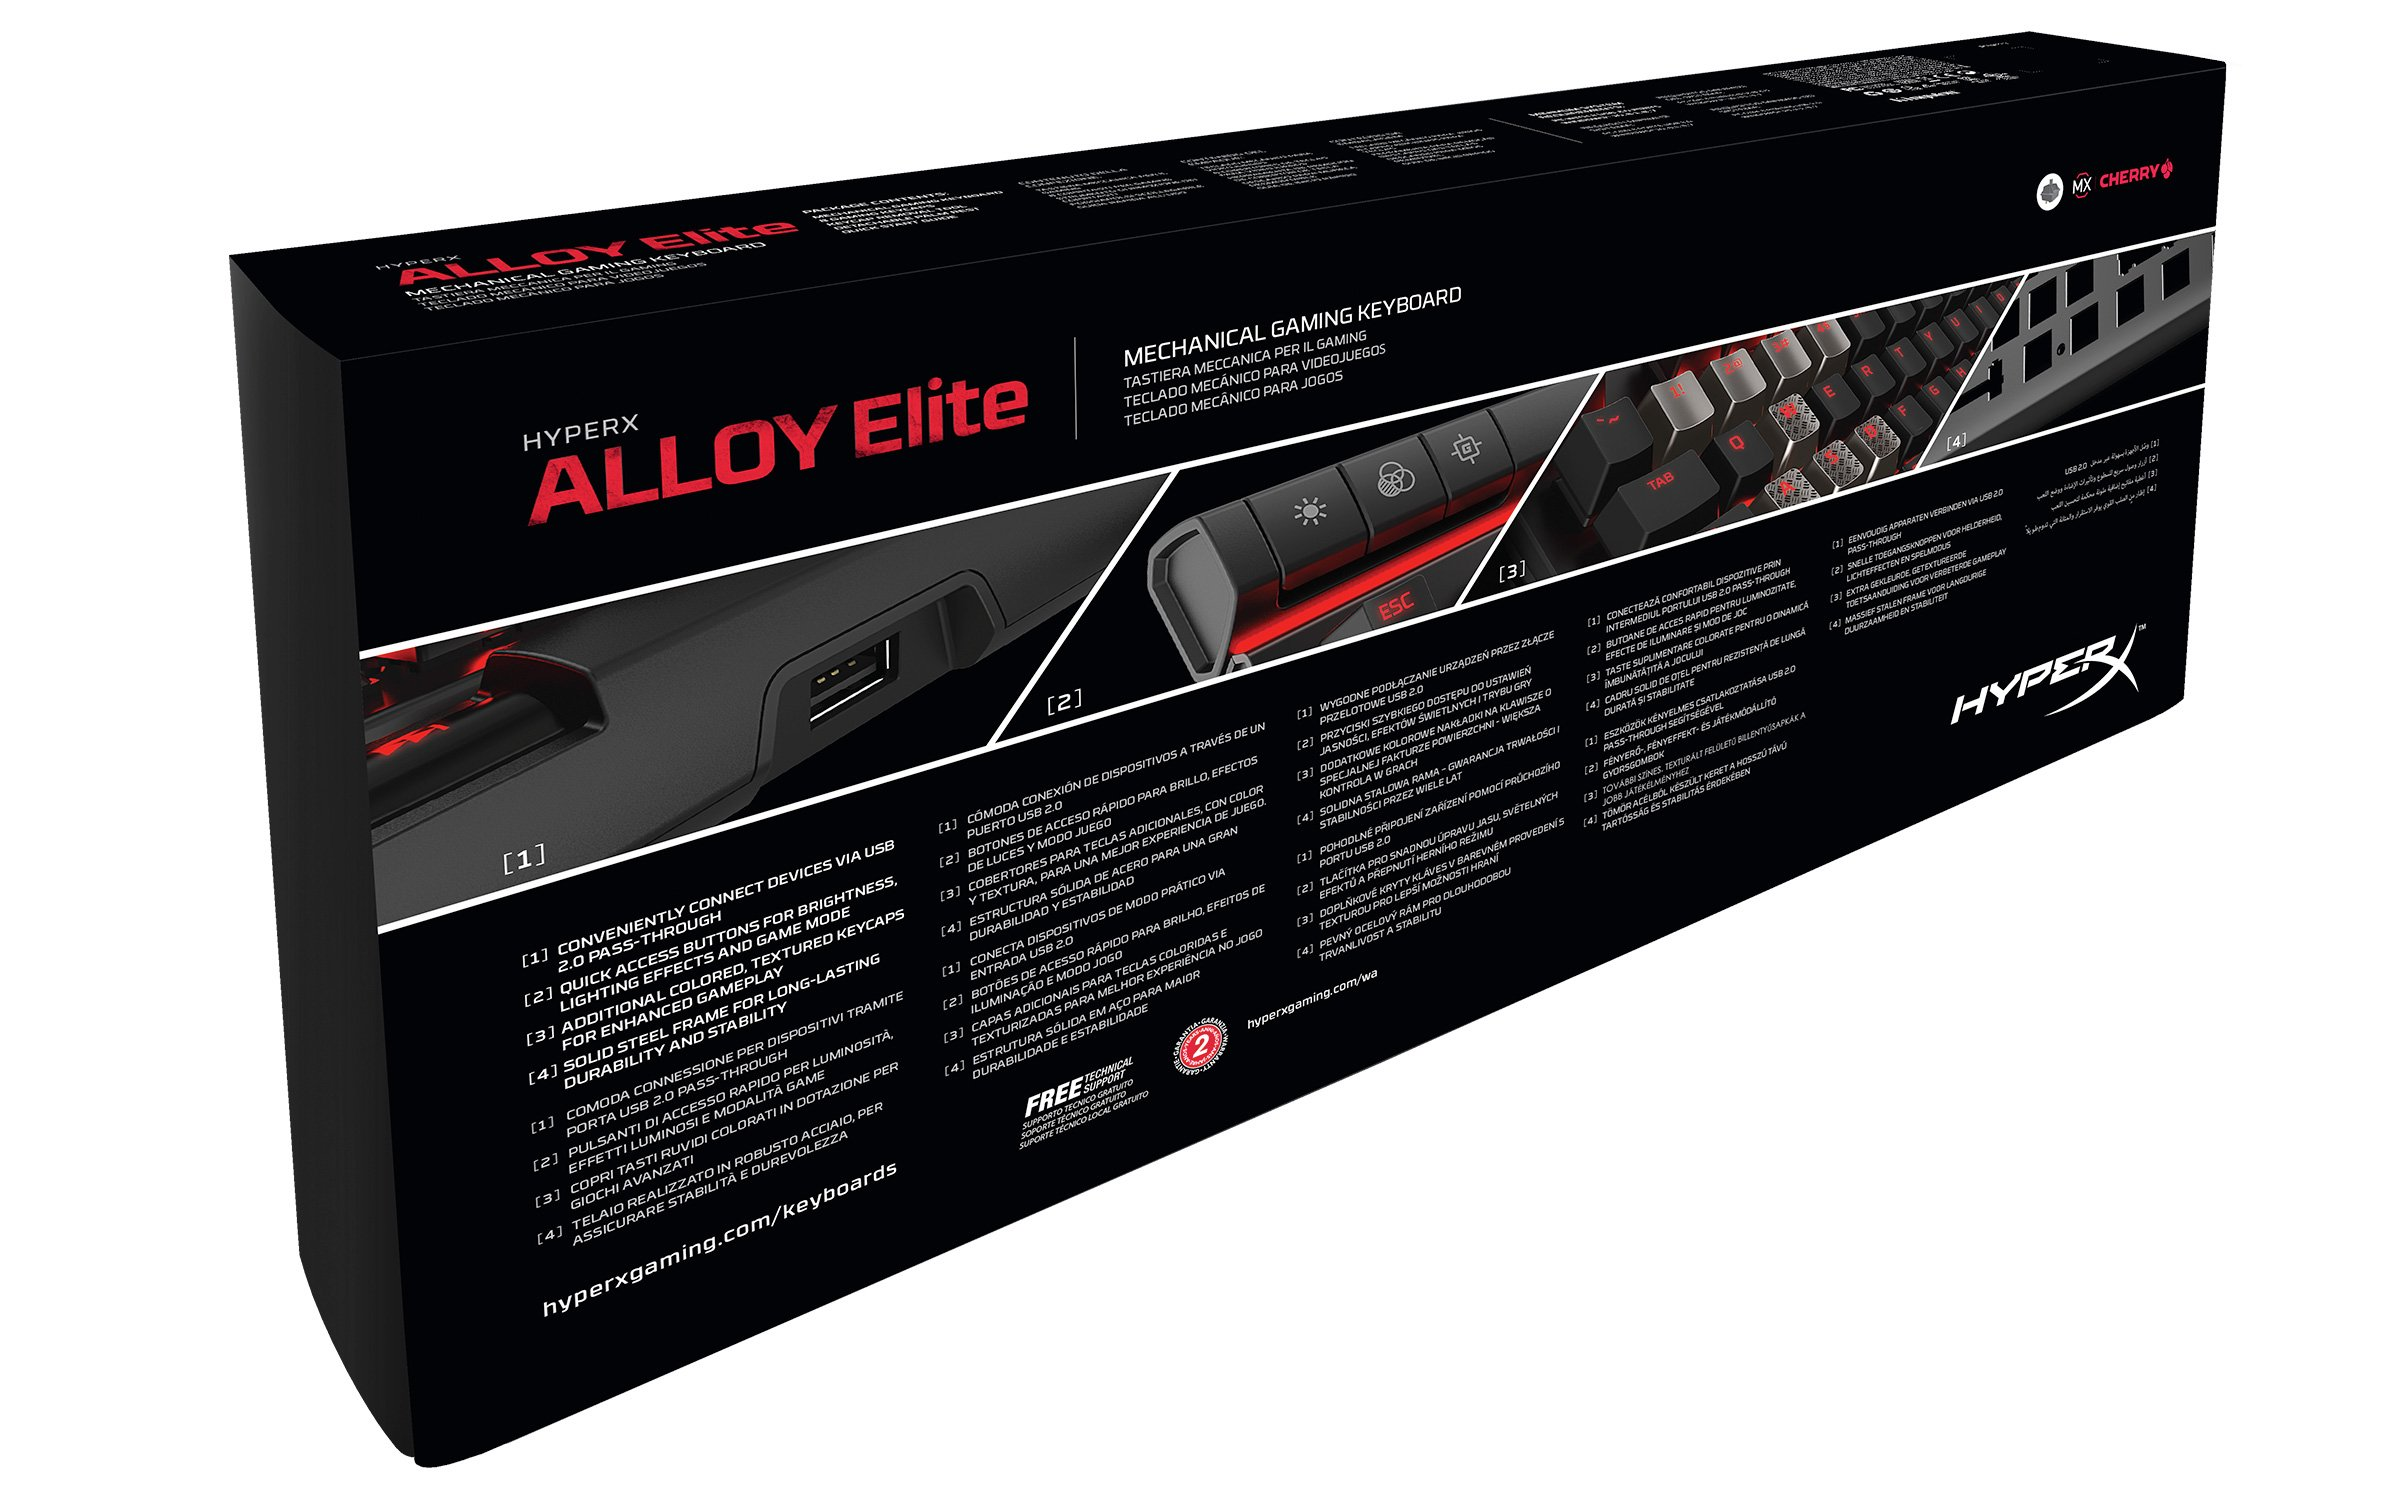 HyperX Alloy Elite Mechanical Gaming Keyboard, Cherry MX Red, Red LED (HX-KB2RD1-US/R1) by HyperX (Image #6)